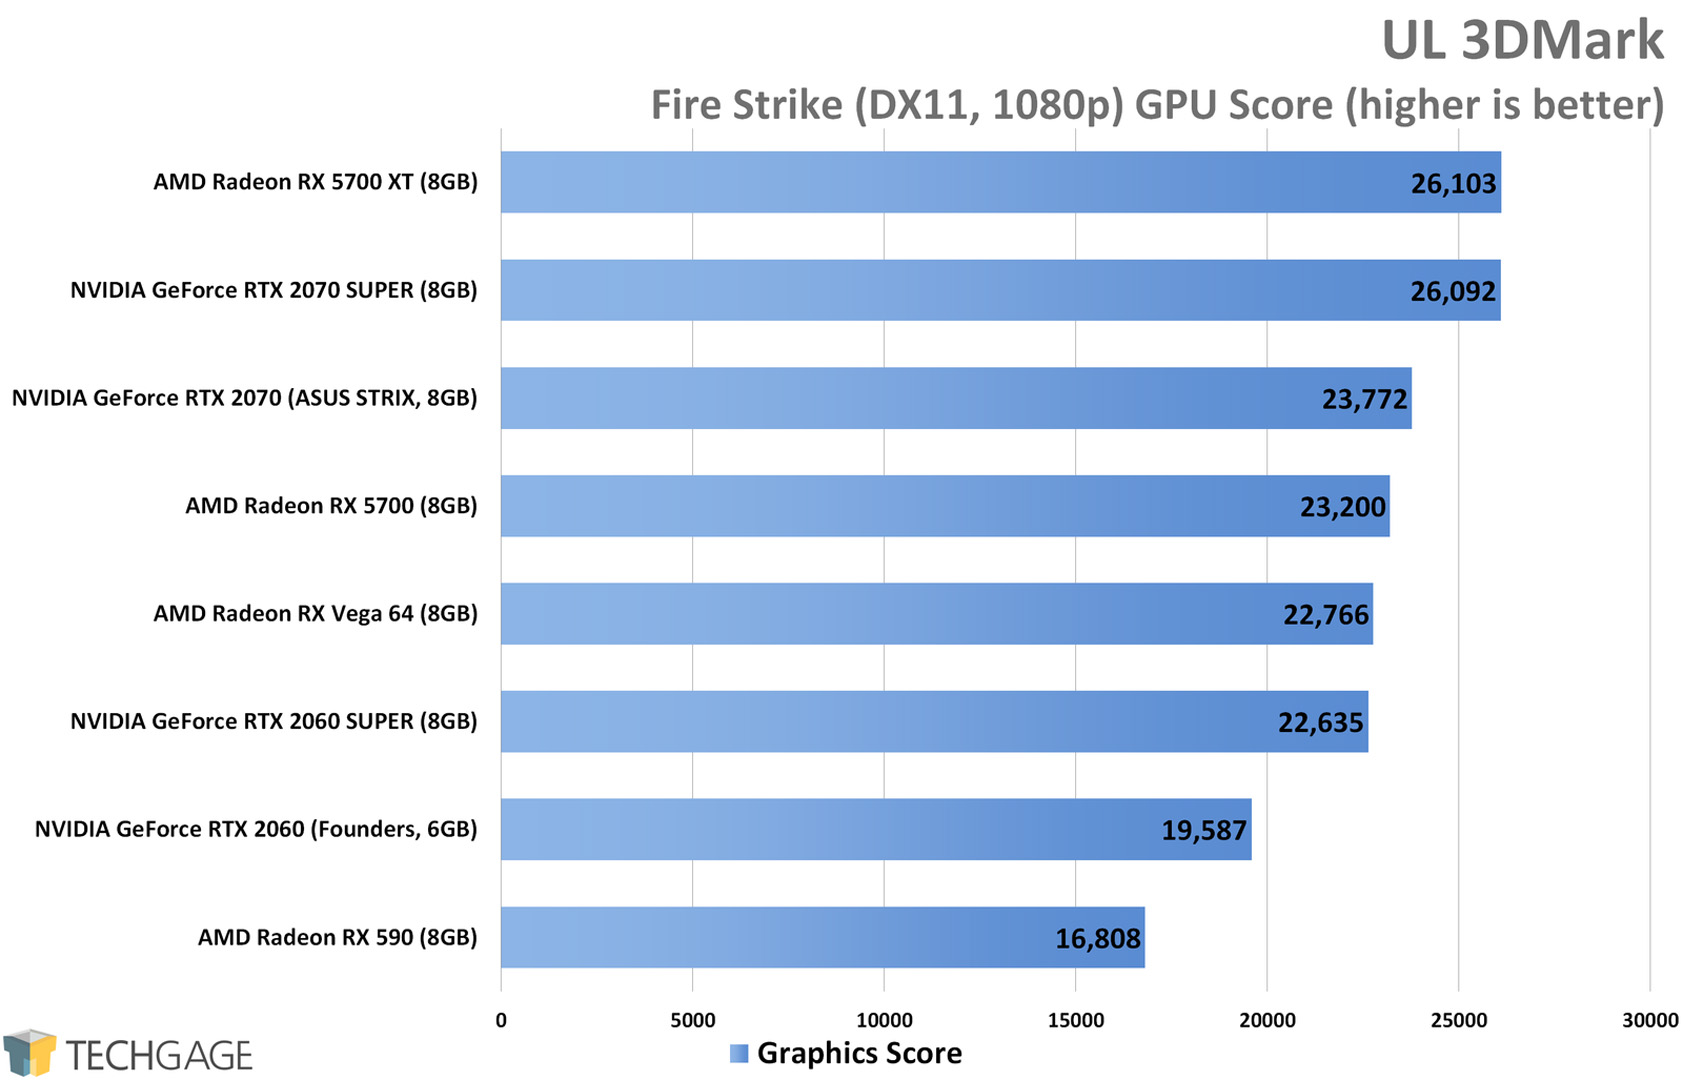 UL 3DMark Fire Strike (1080p) - AMD Radeon RX 5700 XT and RX 5700 Performance